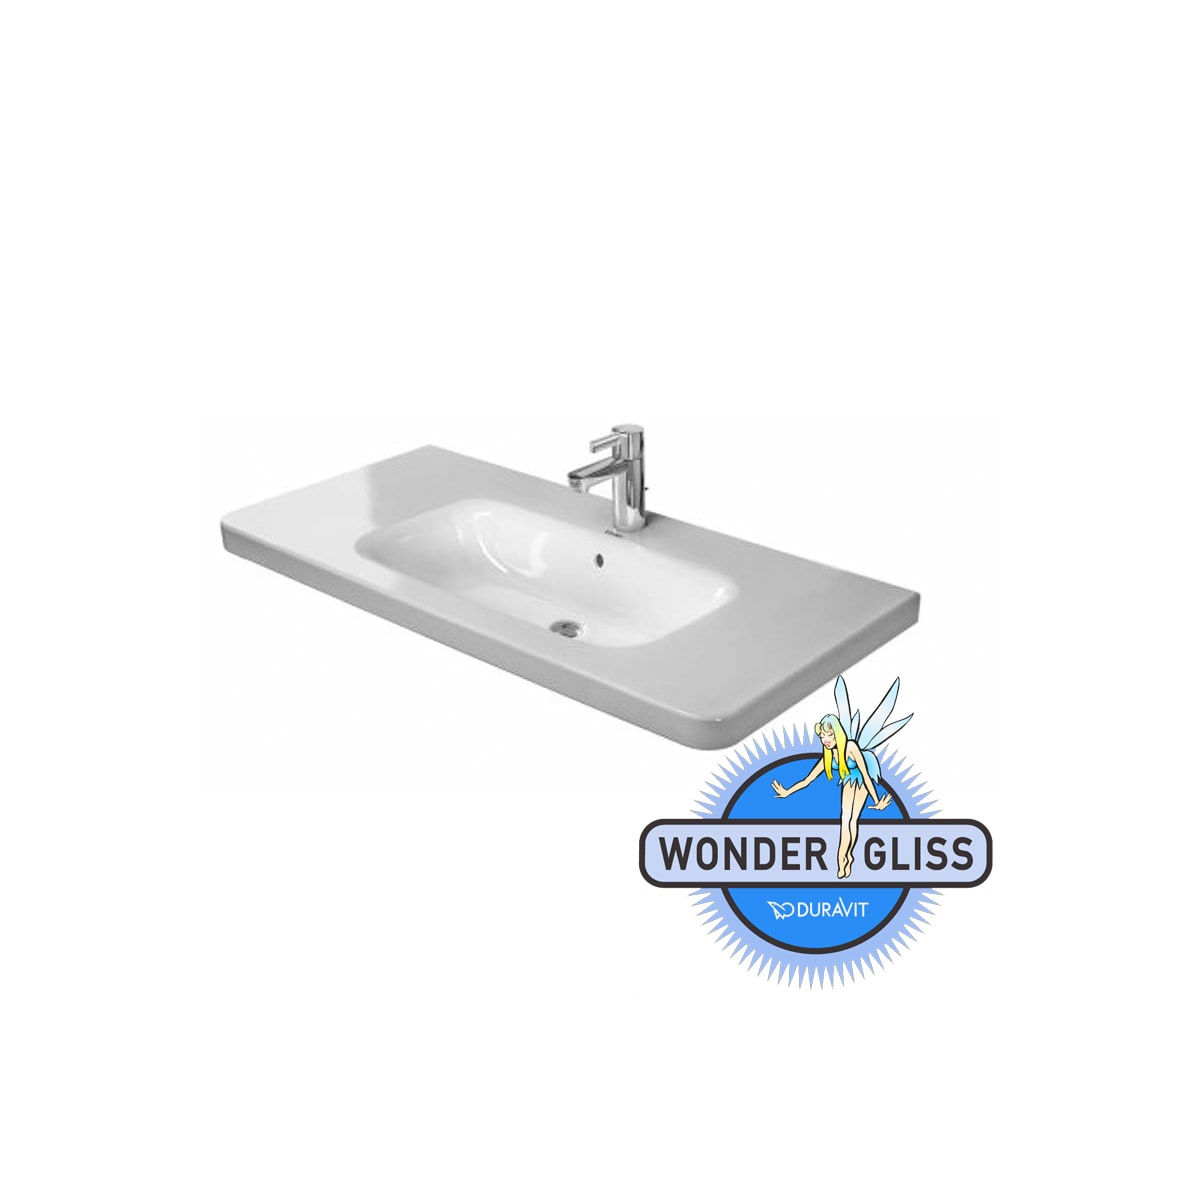 Duravit 23201000001 White Wondergliss Durastyle 39 3 8 Ceramic Bathroom Sink For Vanity Wall Mounted Floating Or Pedestal Installations With Single Faucet Hole Faucet Com